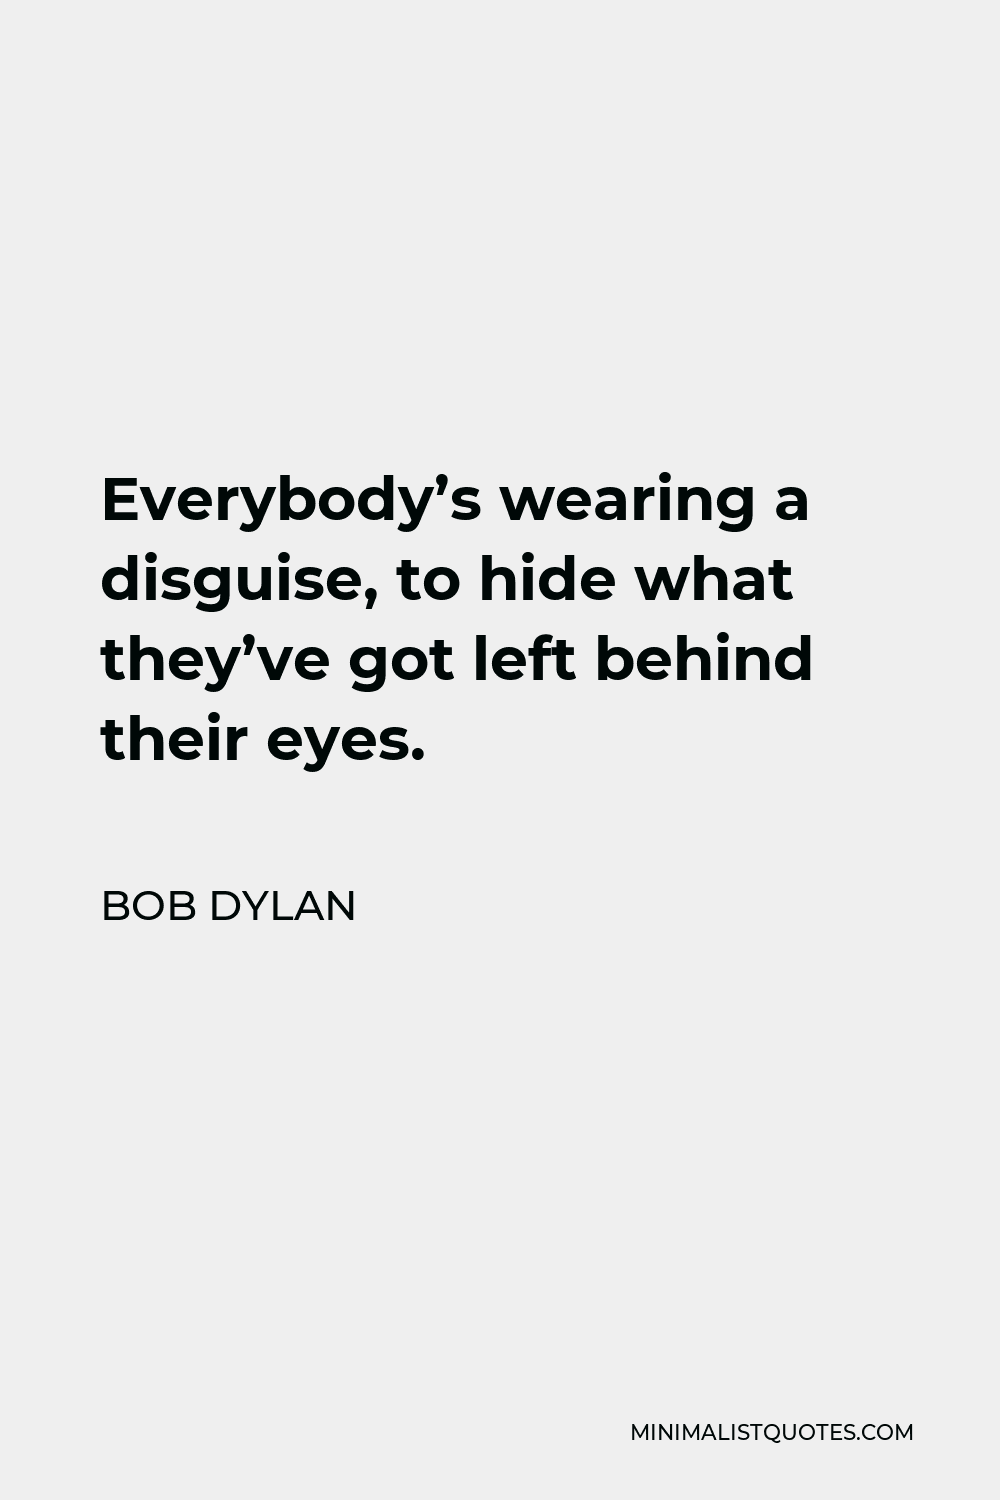 Bob Dylan Quote - Everybody's wearing a disguise, to hide what they've got left behind their eyes.